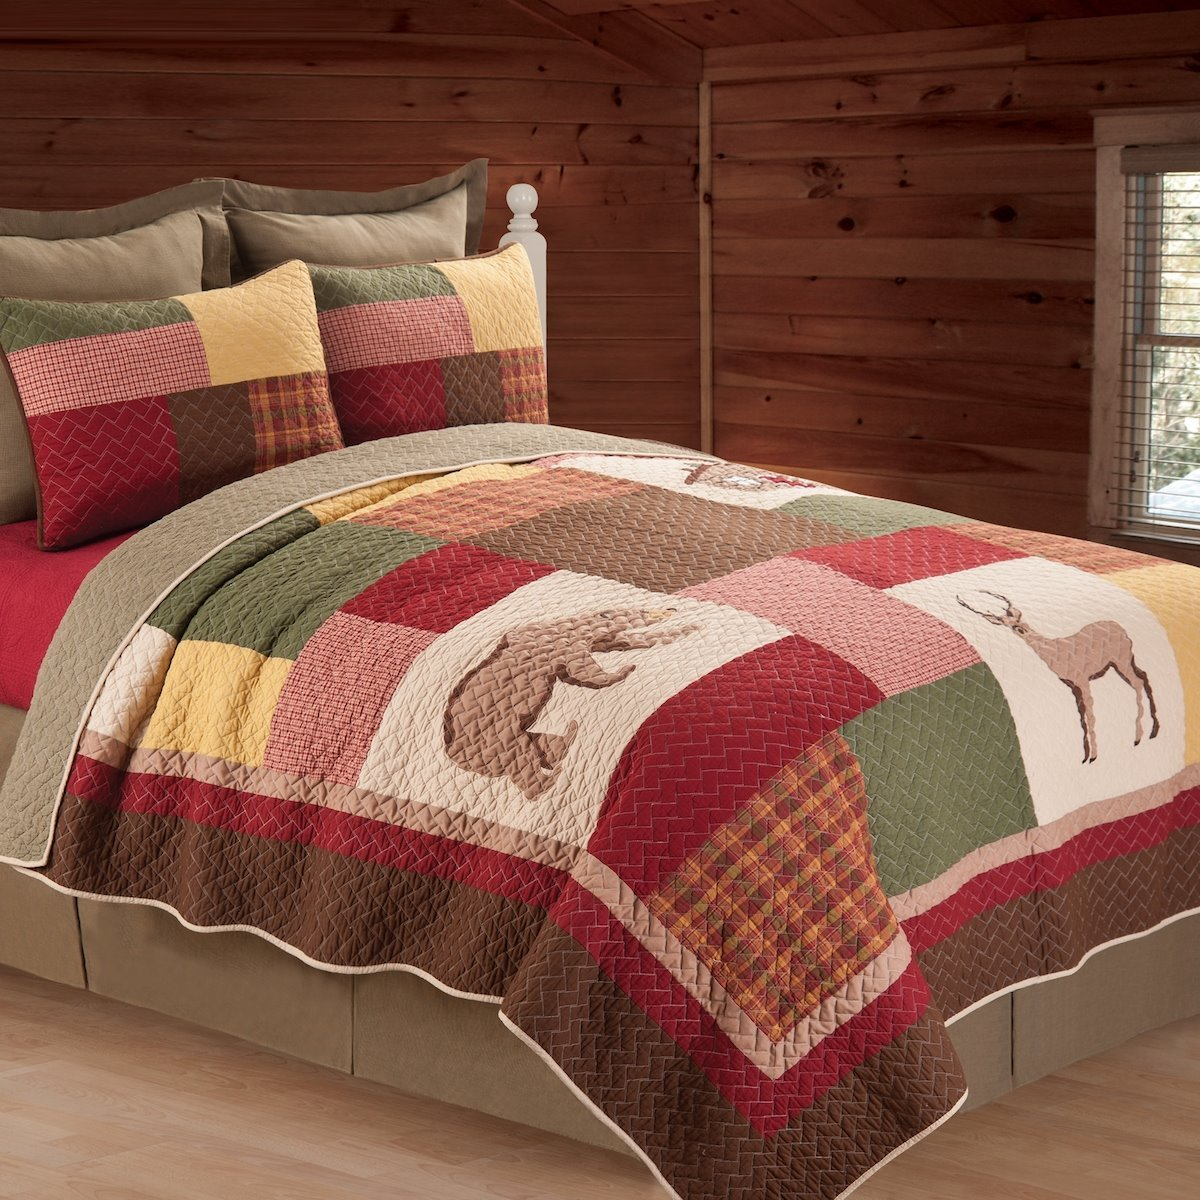 find on multi best cool quilt the shop emma c essentials will and savings that summer quilts keep bedding f comfortable you